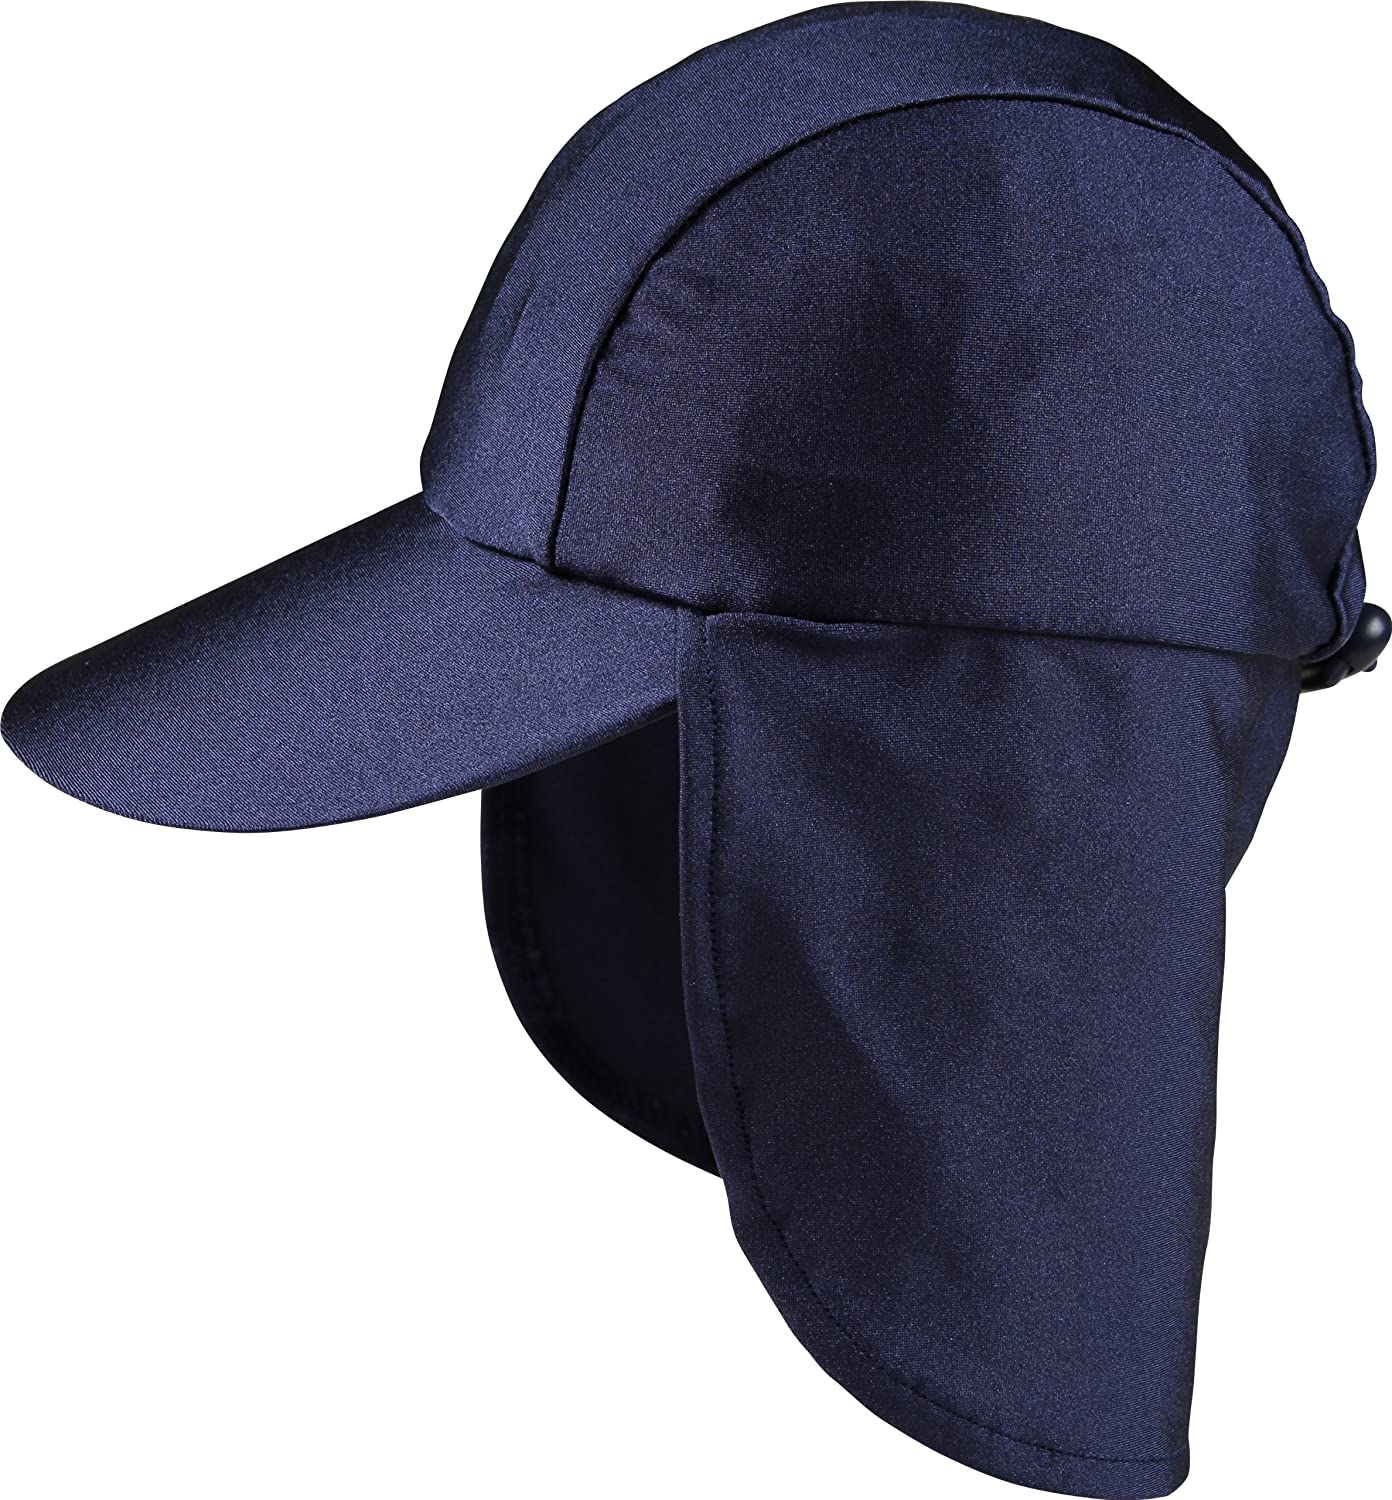 Zunblock UV-Hat with Neck Protection, Navy, Small 5010511